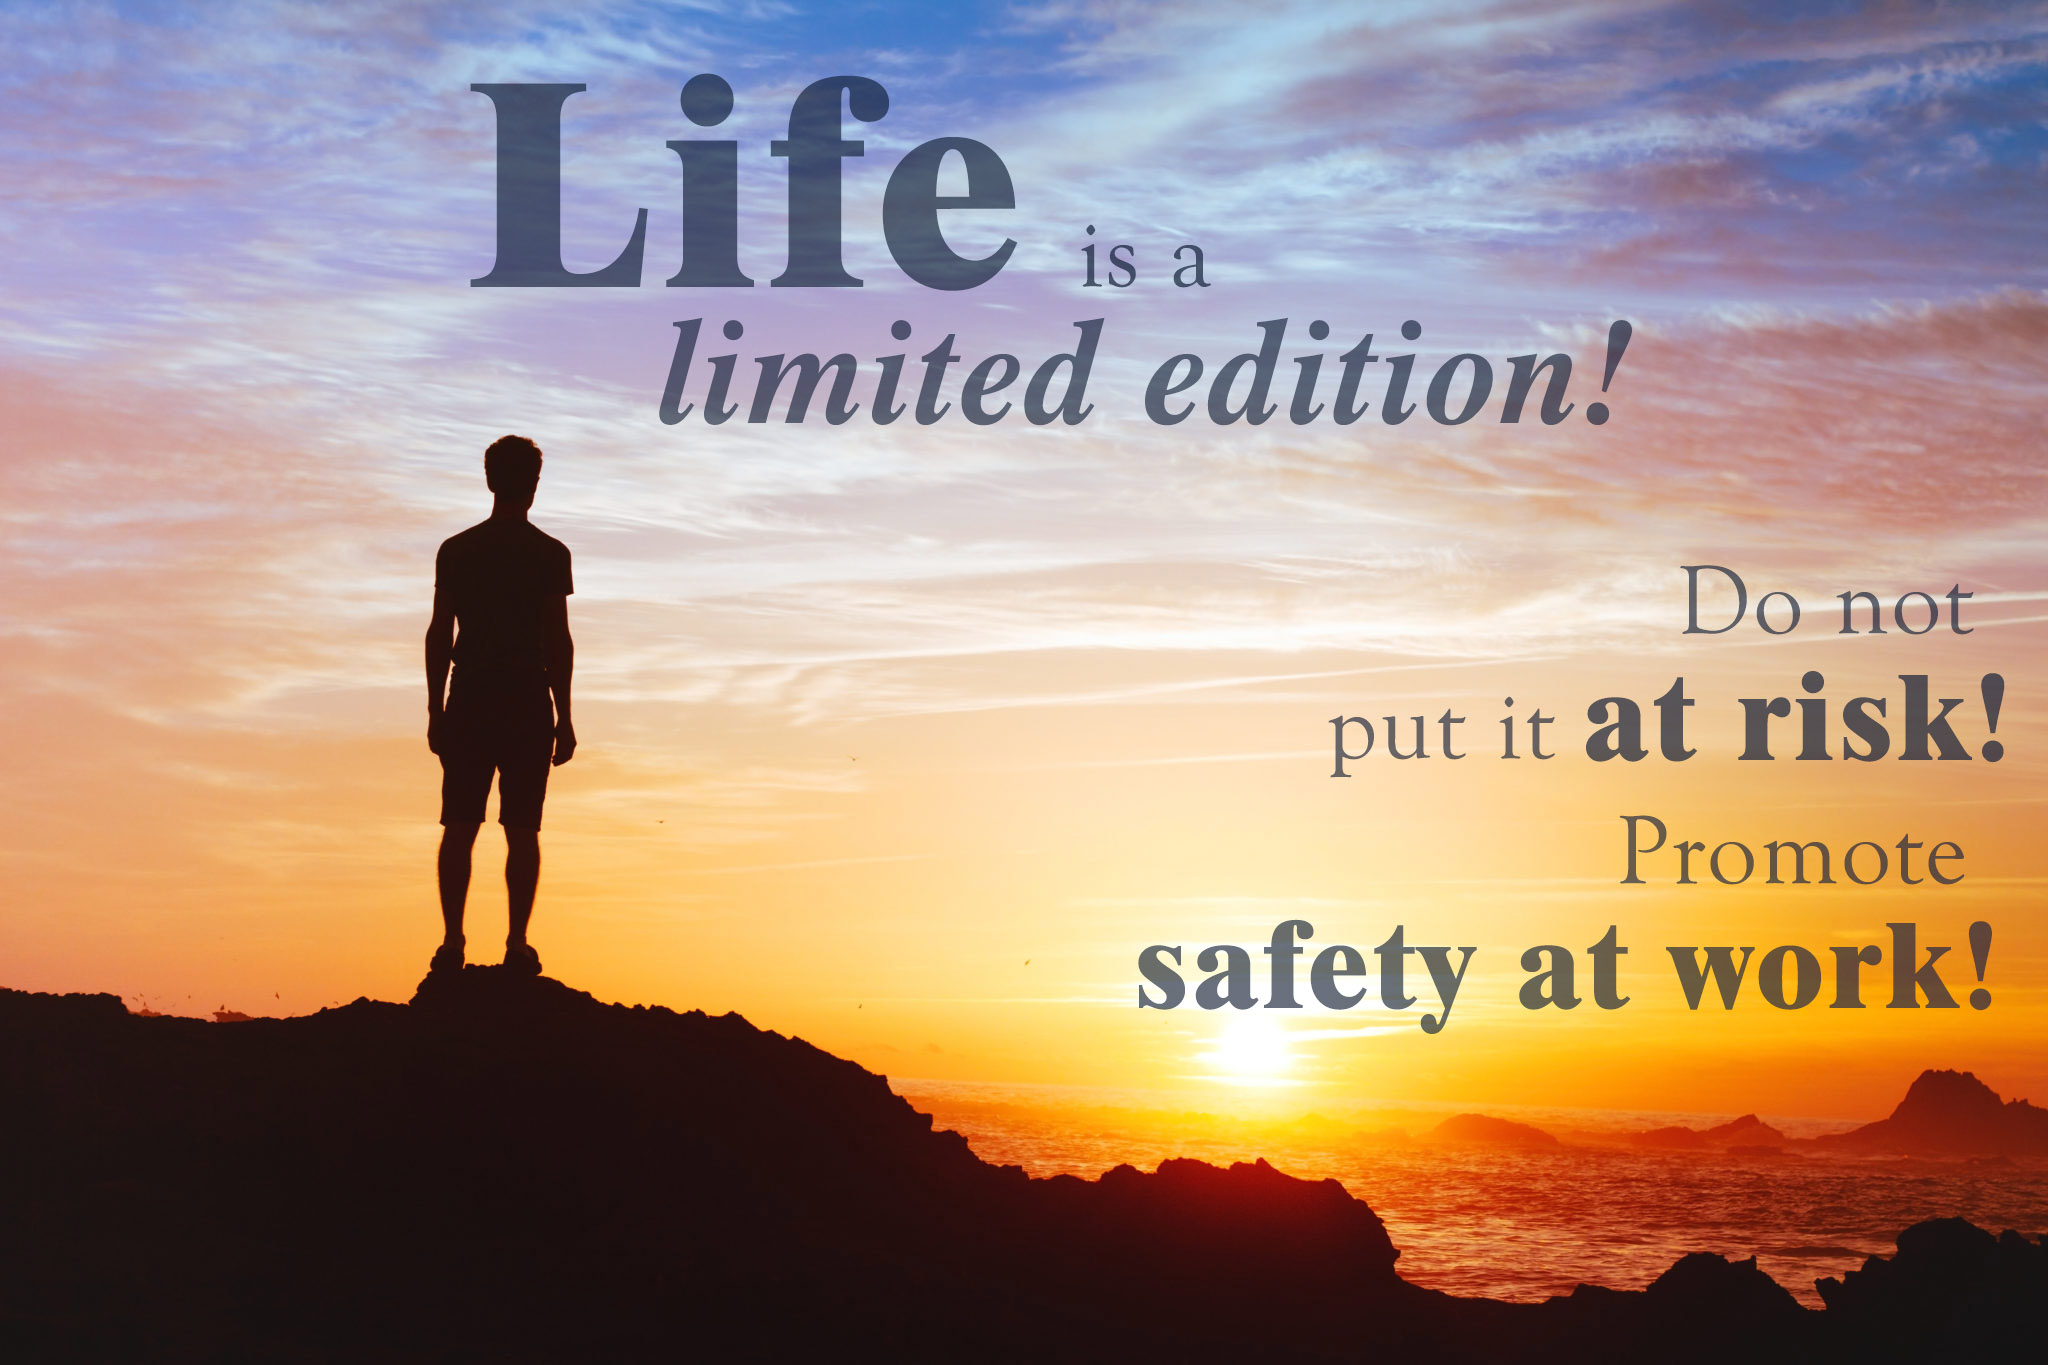 Sicurezza sul lavoro - Life is a limited edition! Do not  put it at risk!  Promote safety at work!